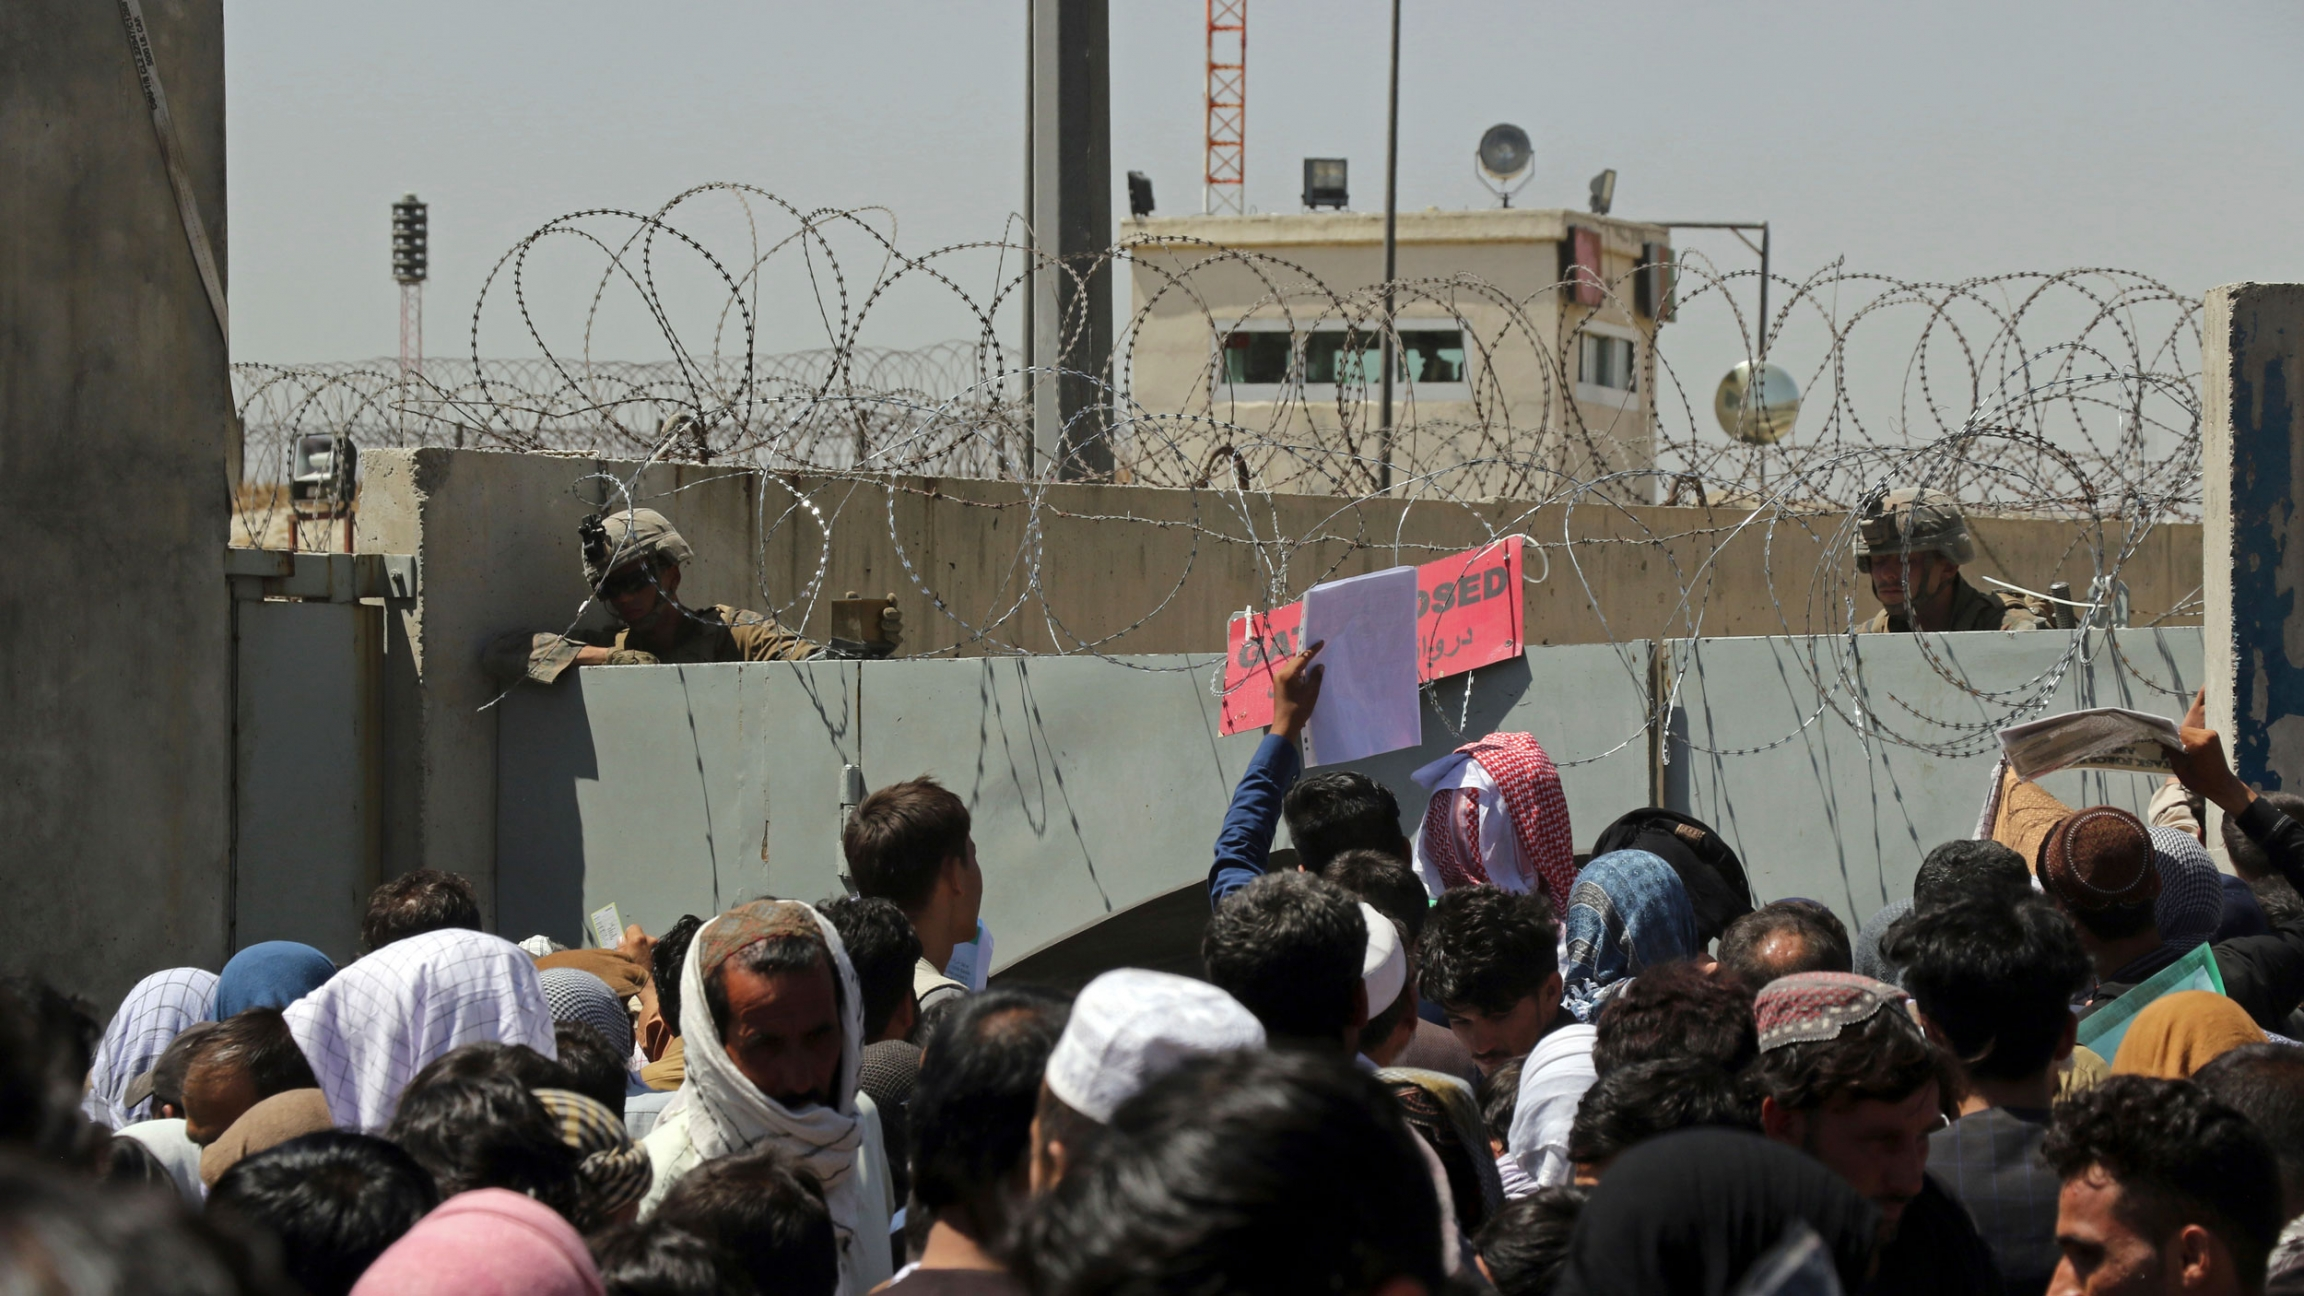 A larger crowd of people are shown crammed up against large cement barriers with barbed-wire on top.